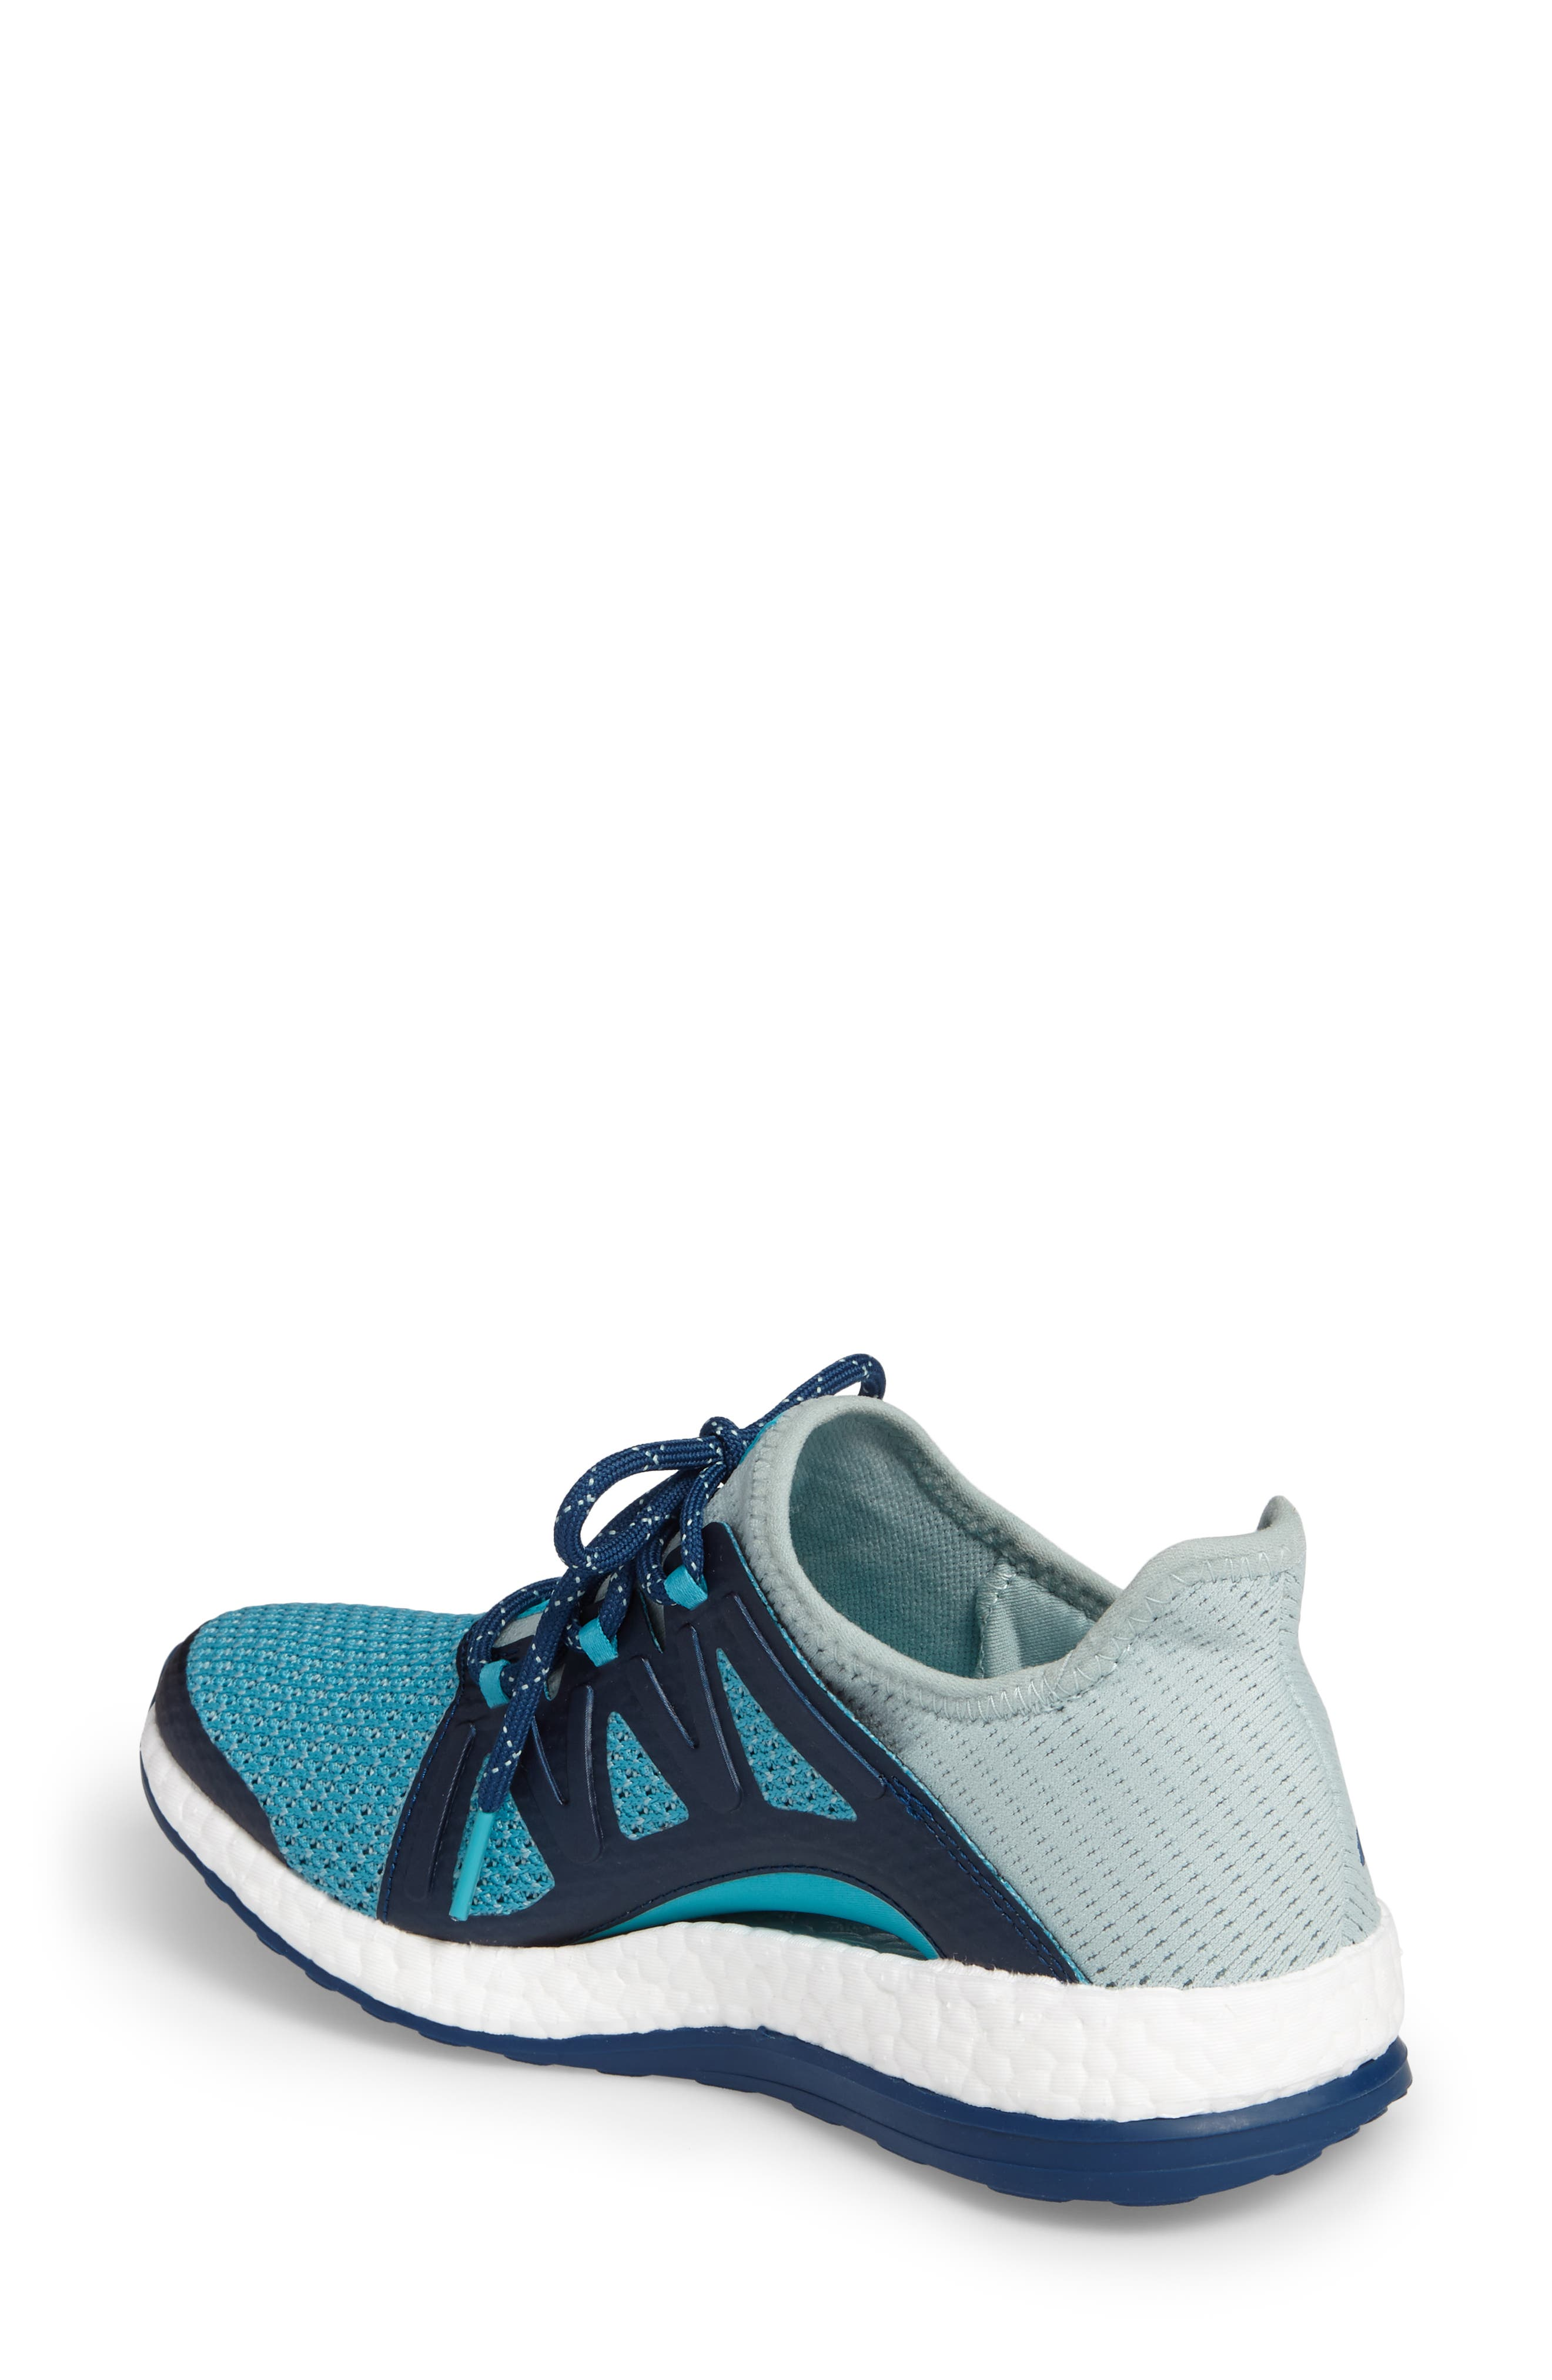 PureBOOST Xpose Running Shoe,                             Alternate thumbnail 6, color,                             Tactile Green/ Energy Blue